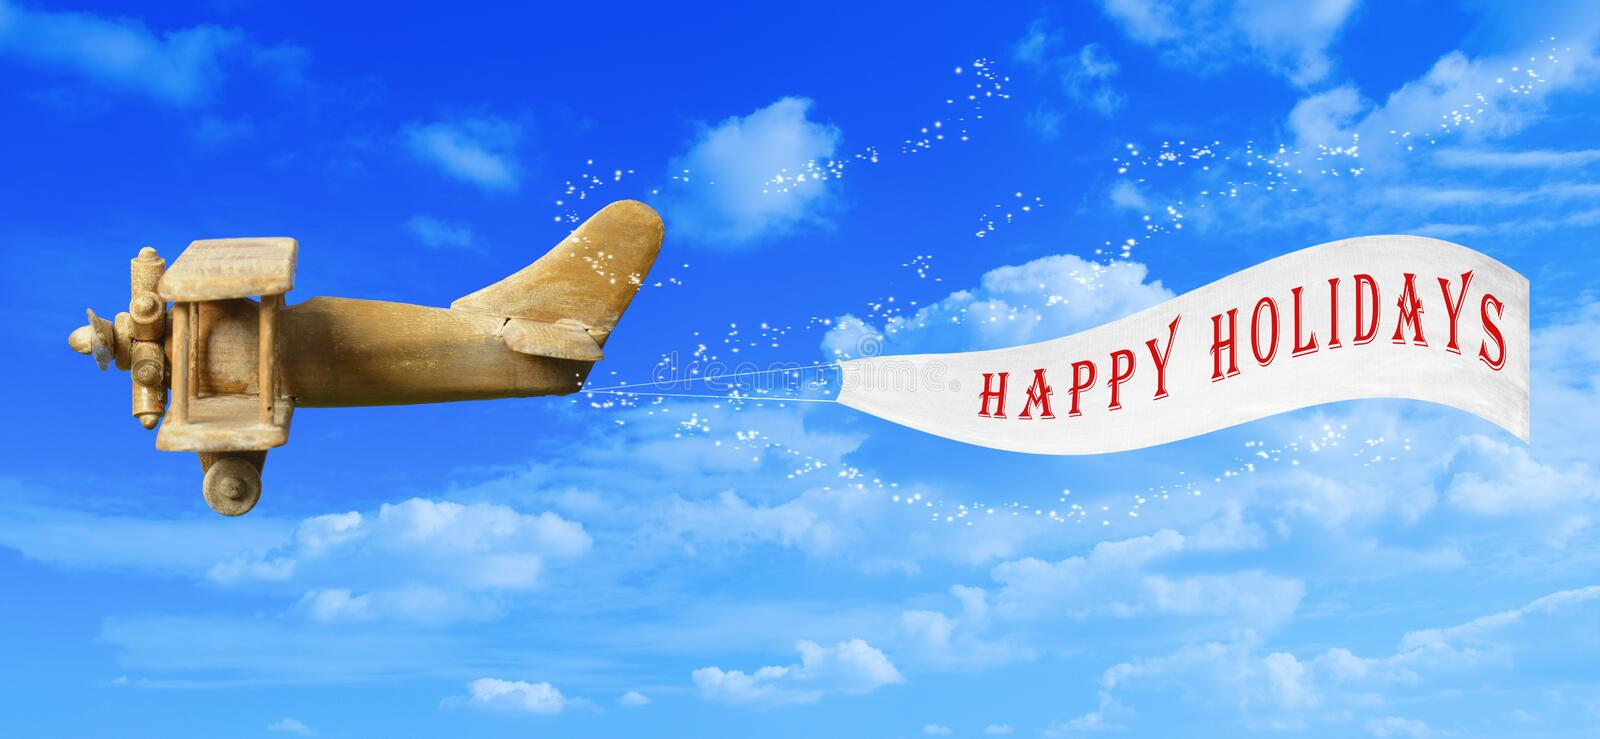 Happy Holidays Banner royalty free stock image